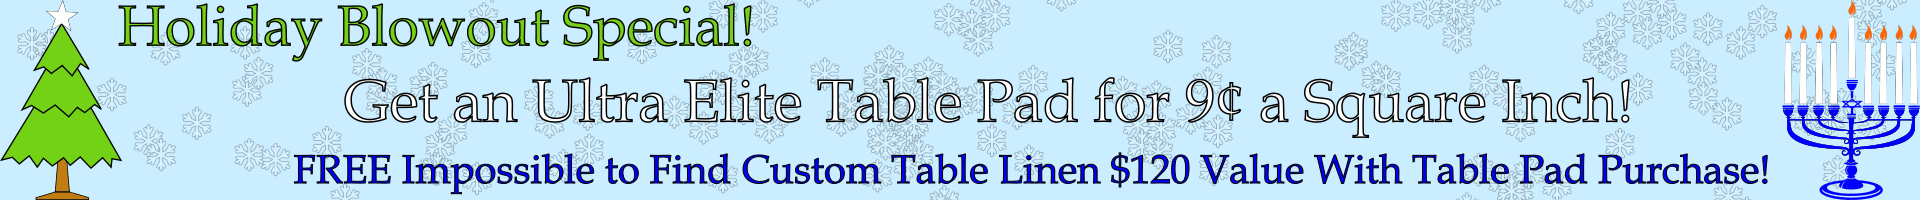 Holiday Blowout Special - Get An Ultra Elite Table Pad For 9 Cents A Square Inch